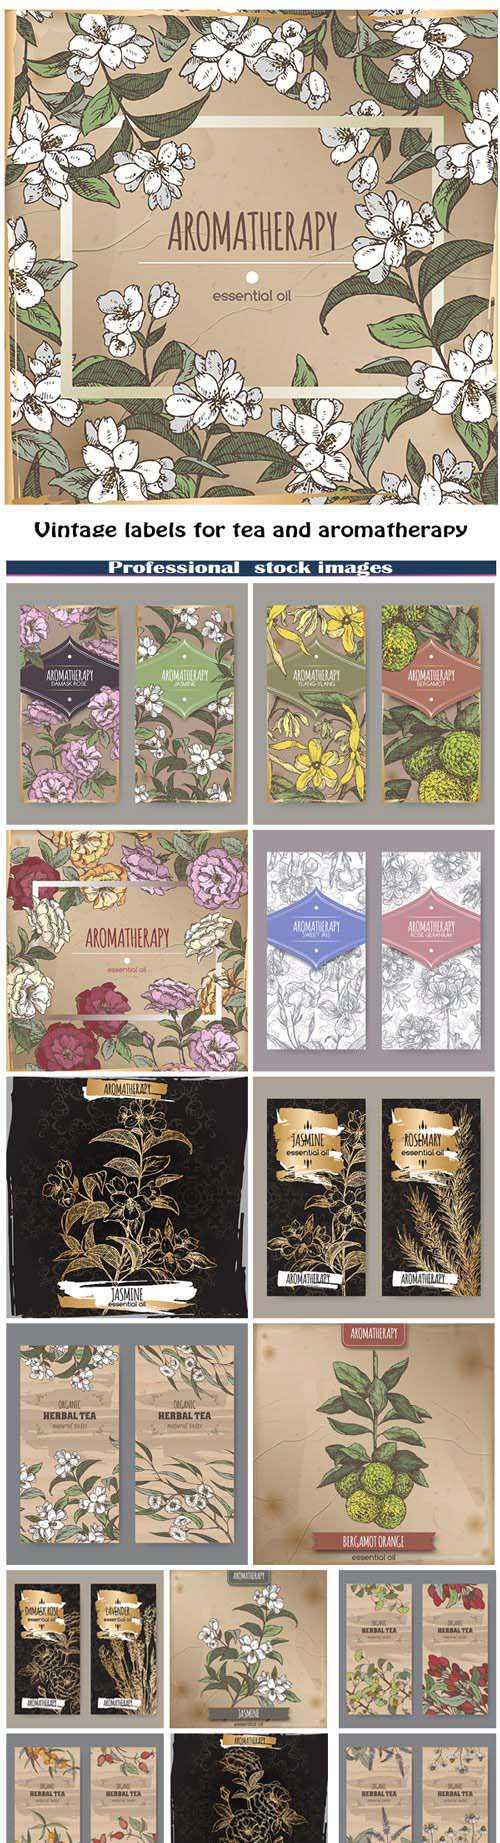 Vintage labels for tea and aromatherapy